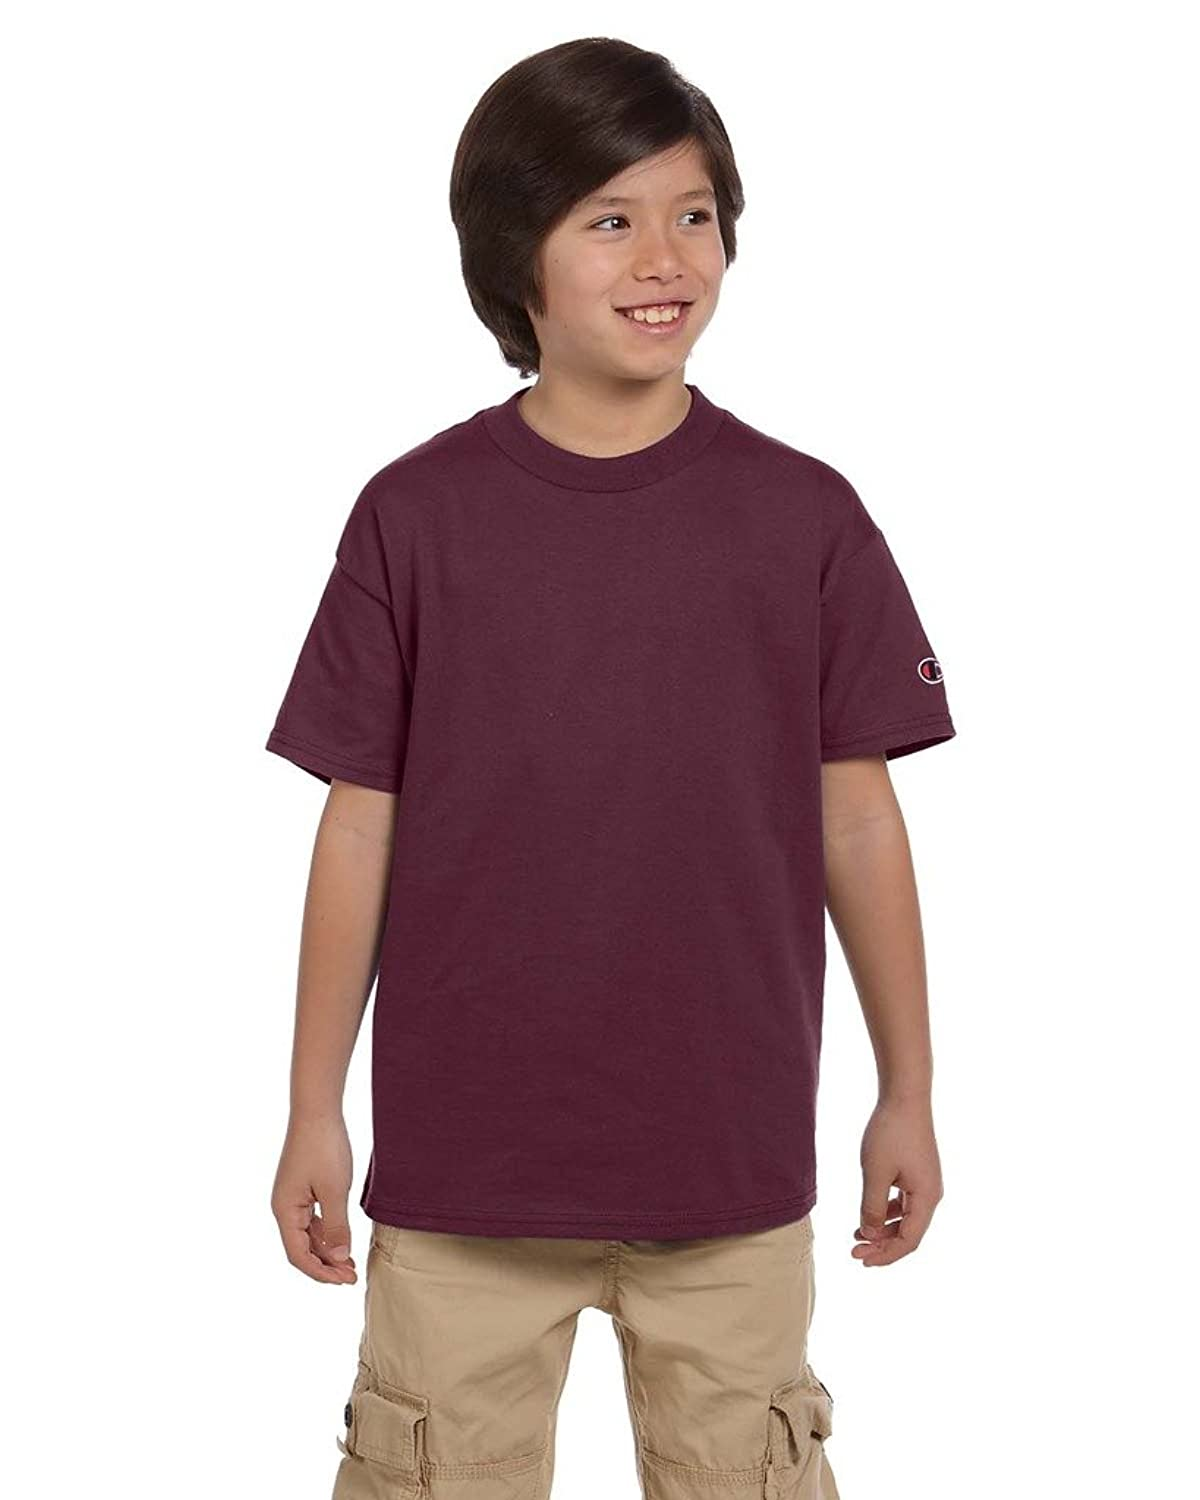 CH YOUTH 6.1OZ COTT S/S TEE (MAROON) (M) hot sale